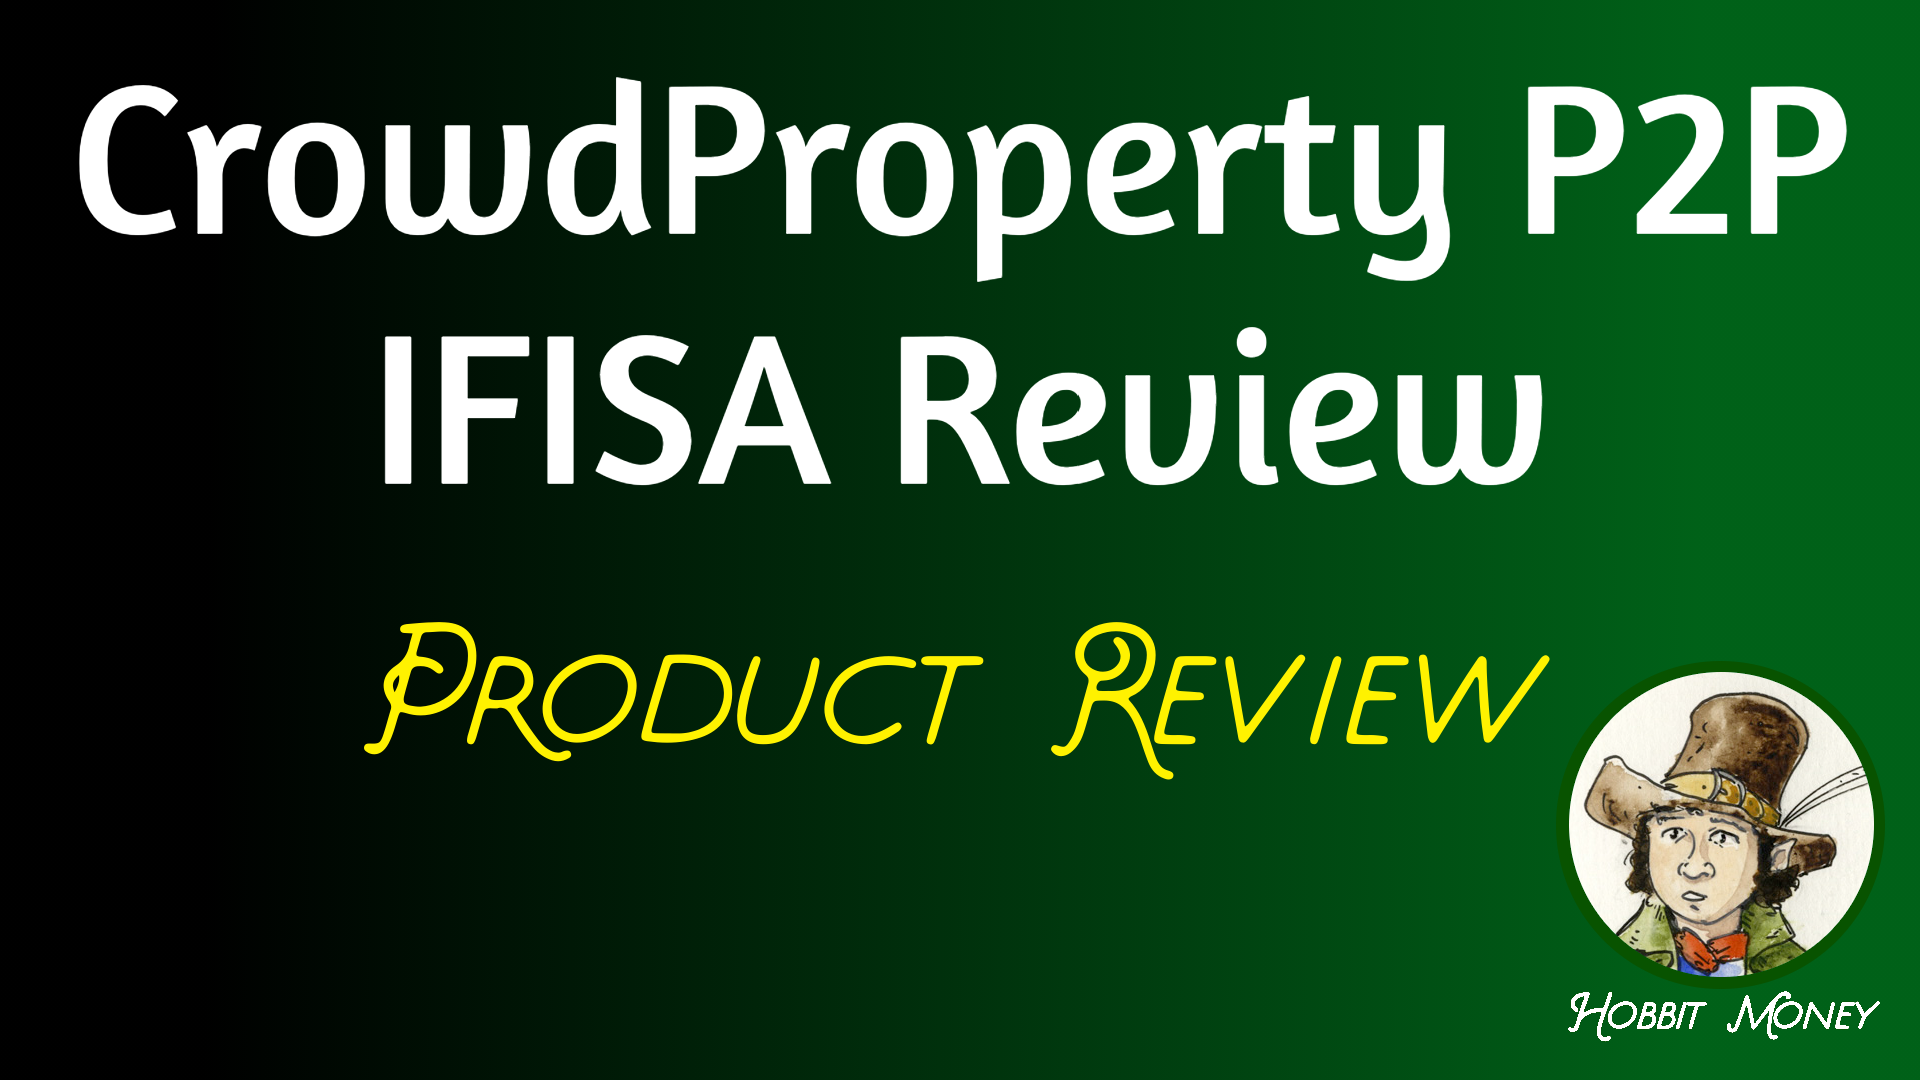 CrowdProperty P2P IFISA Product Review - Hobbit Money